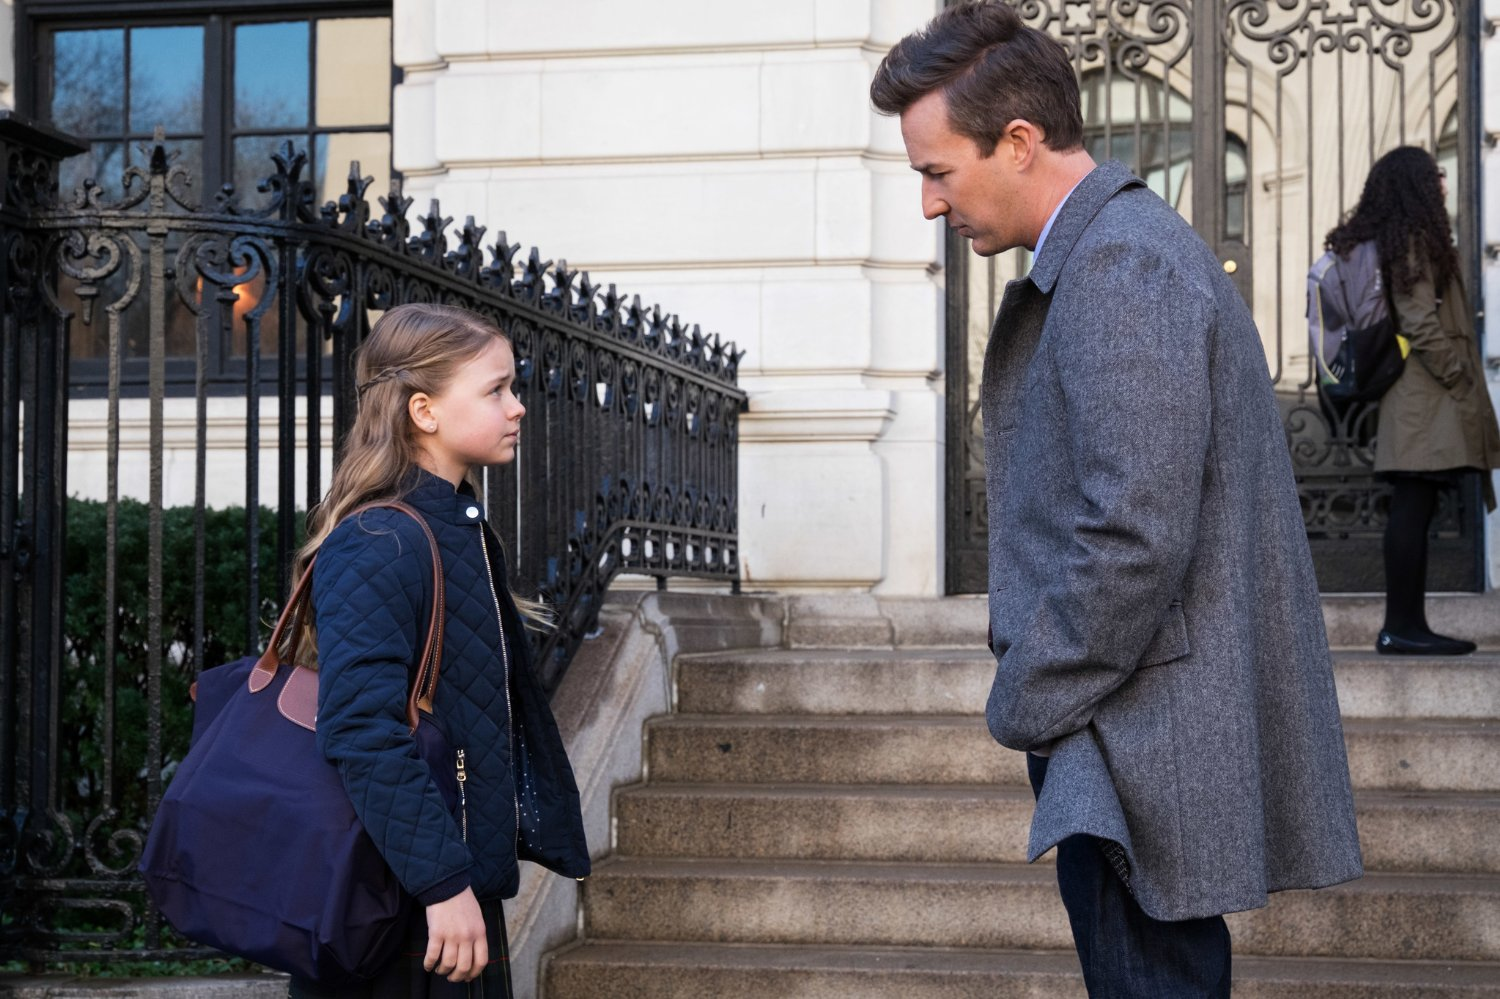 collateral beauty still 19